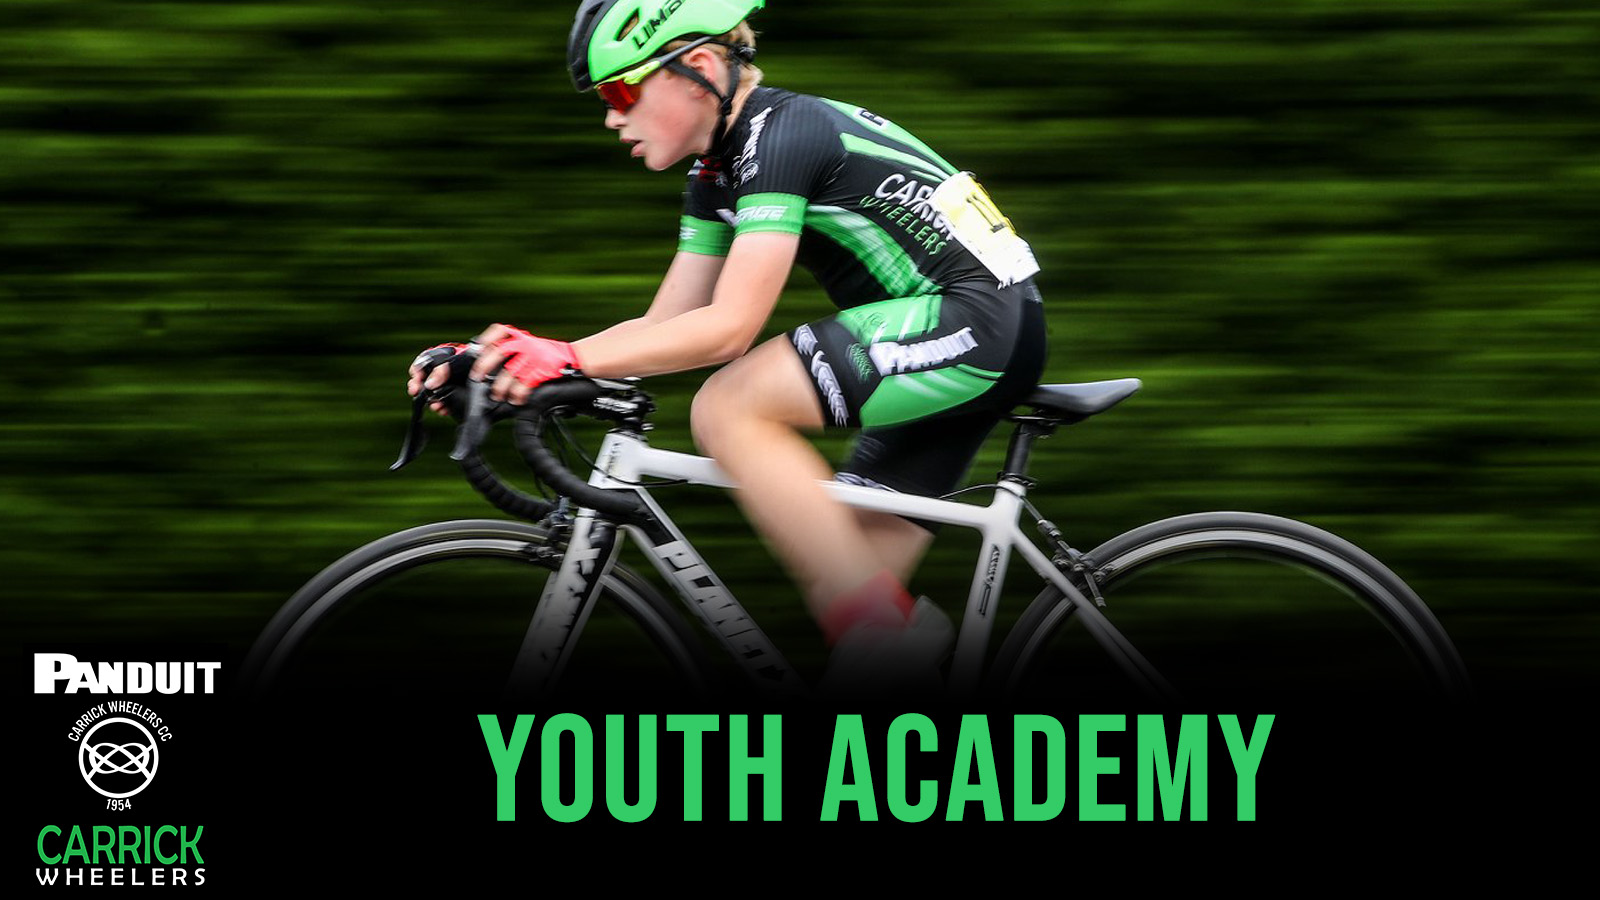 Panduit Carrick Wheelers Youth Academy | North West Youth Tour 2021 & Munster Road Races